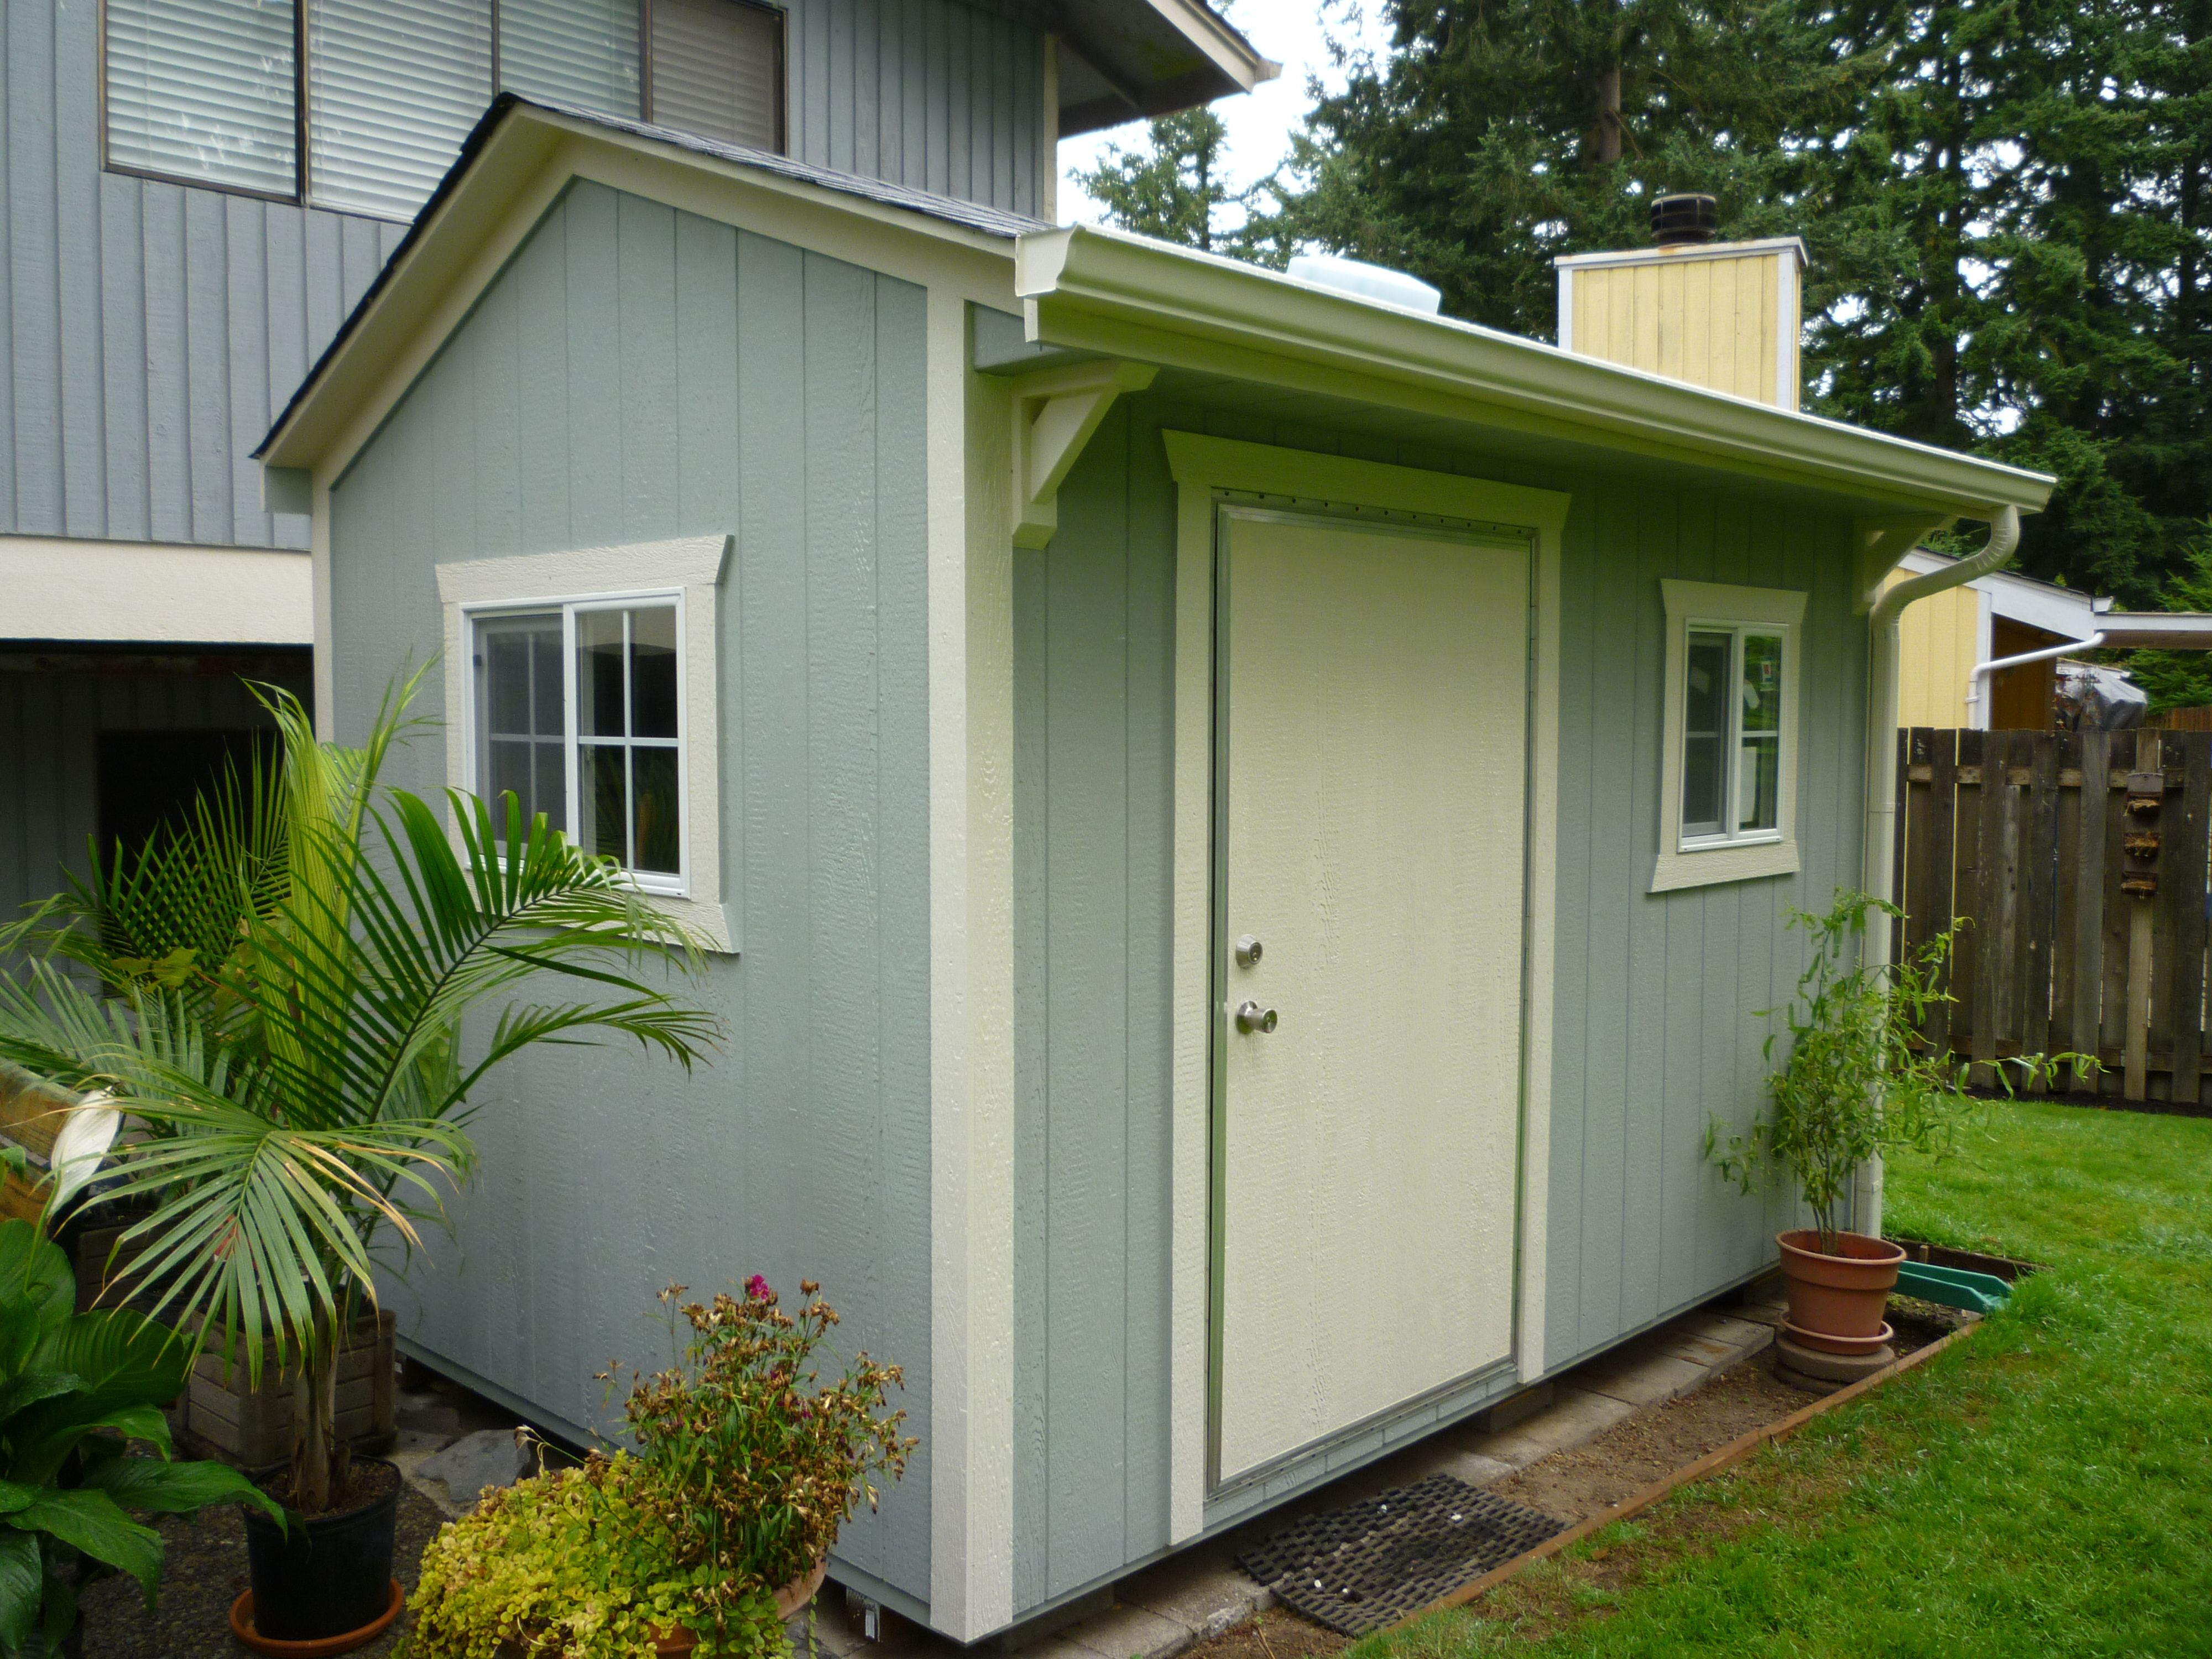 office garden shed. Storage, Garden Shed, Playhouse, Craft Room, Mother In Law Office Shed B